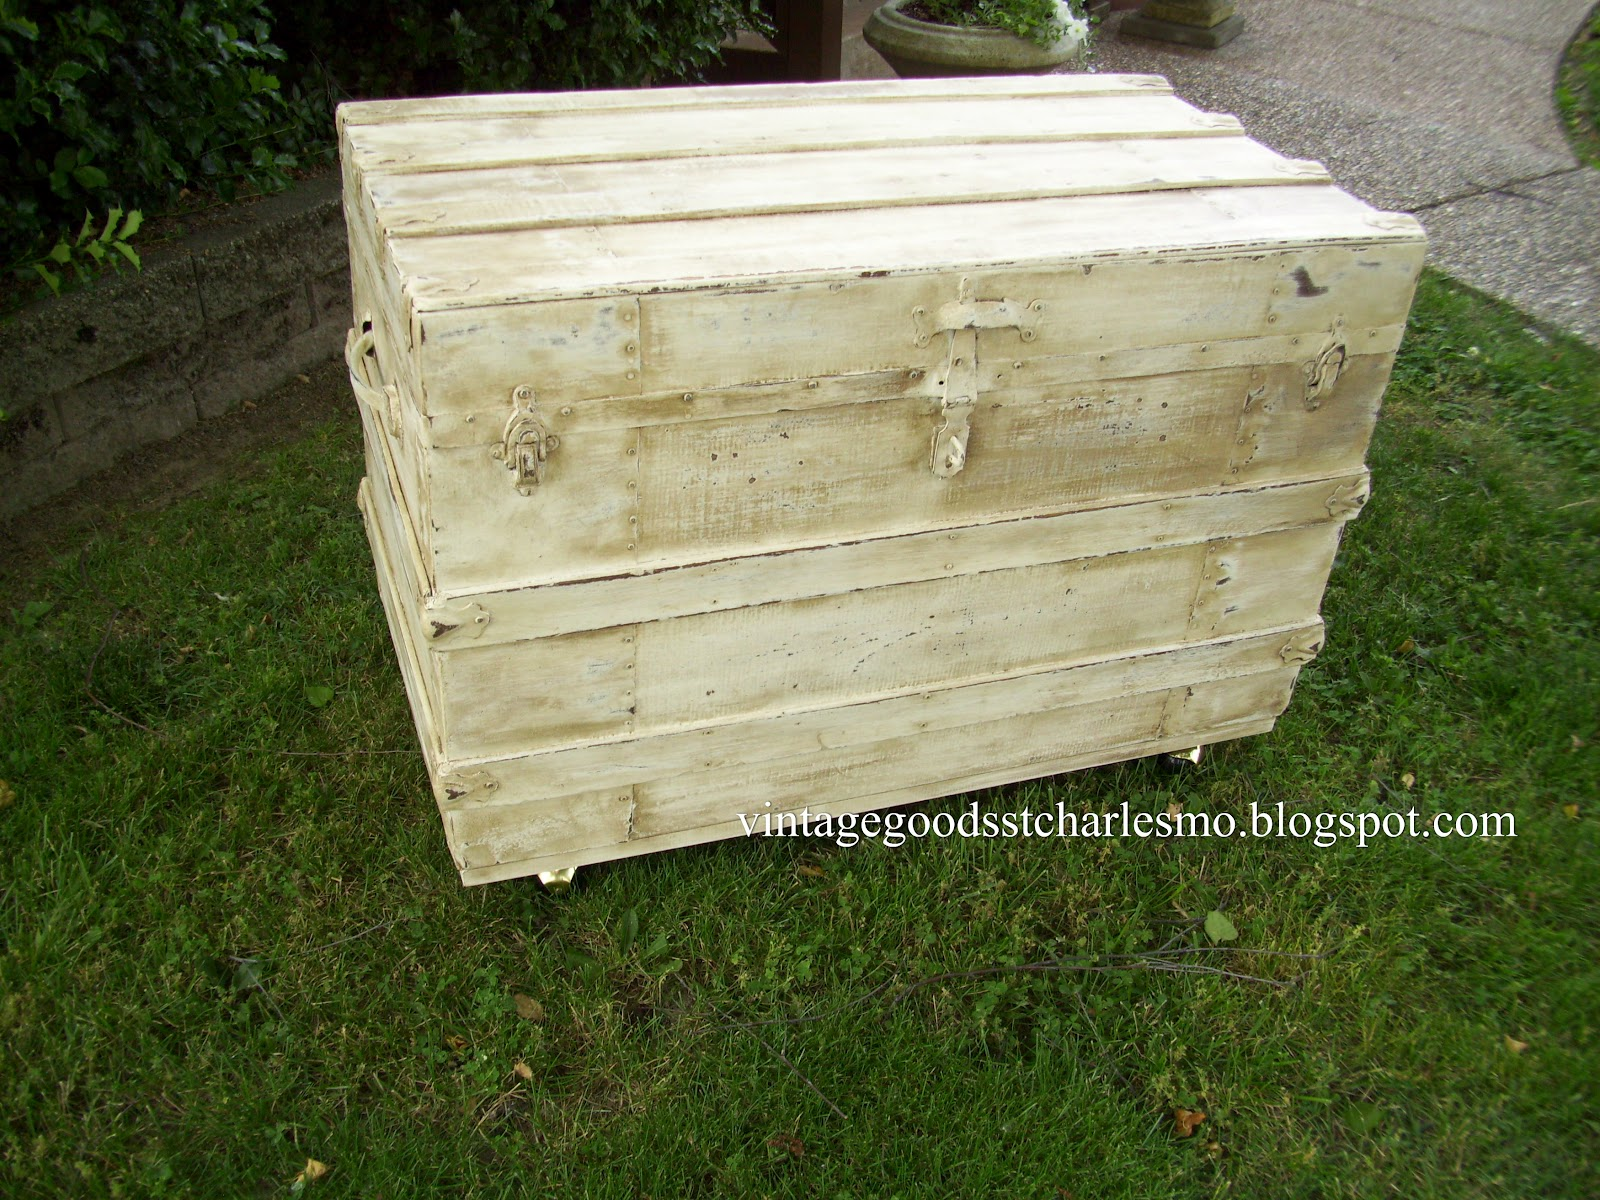 Vintage goods old trunk - How to paint an old trunk ...